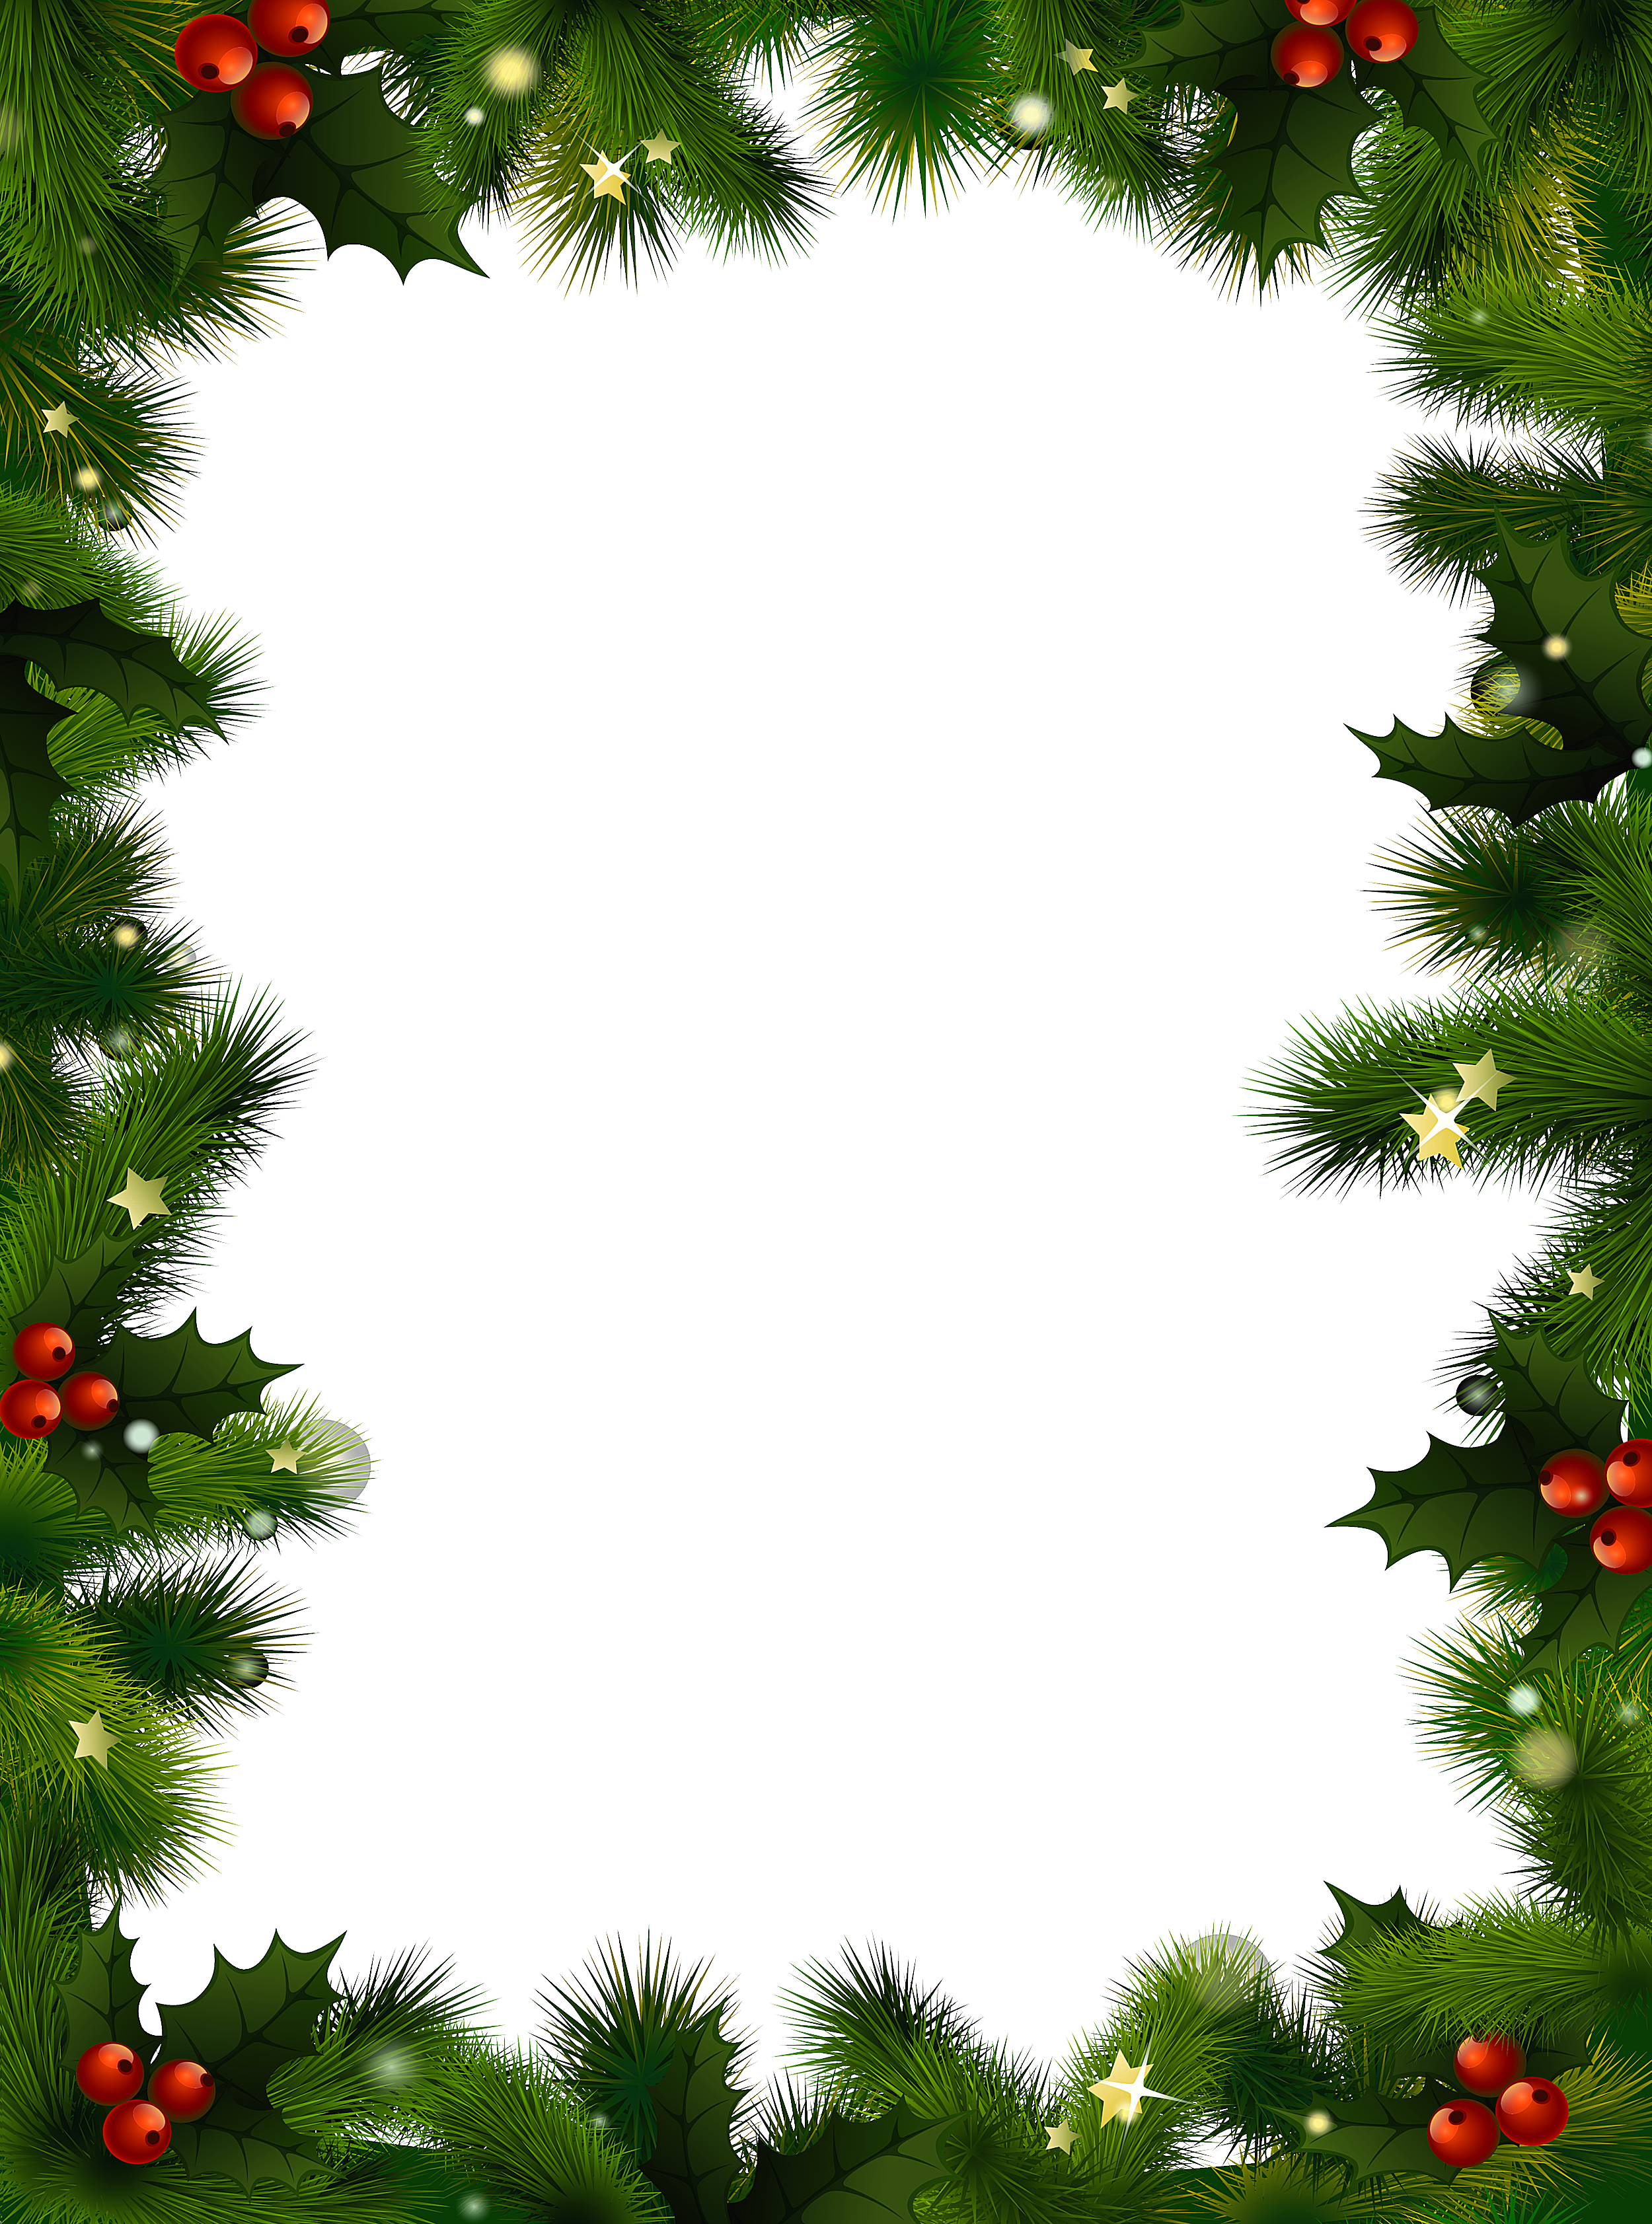 free christmas images clipart border background